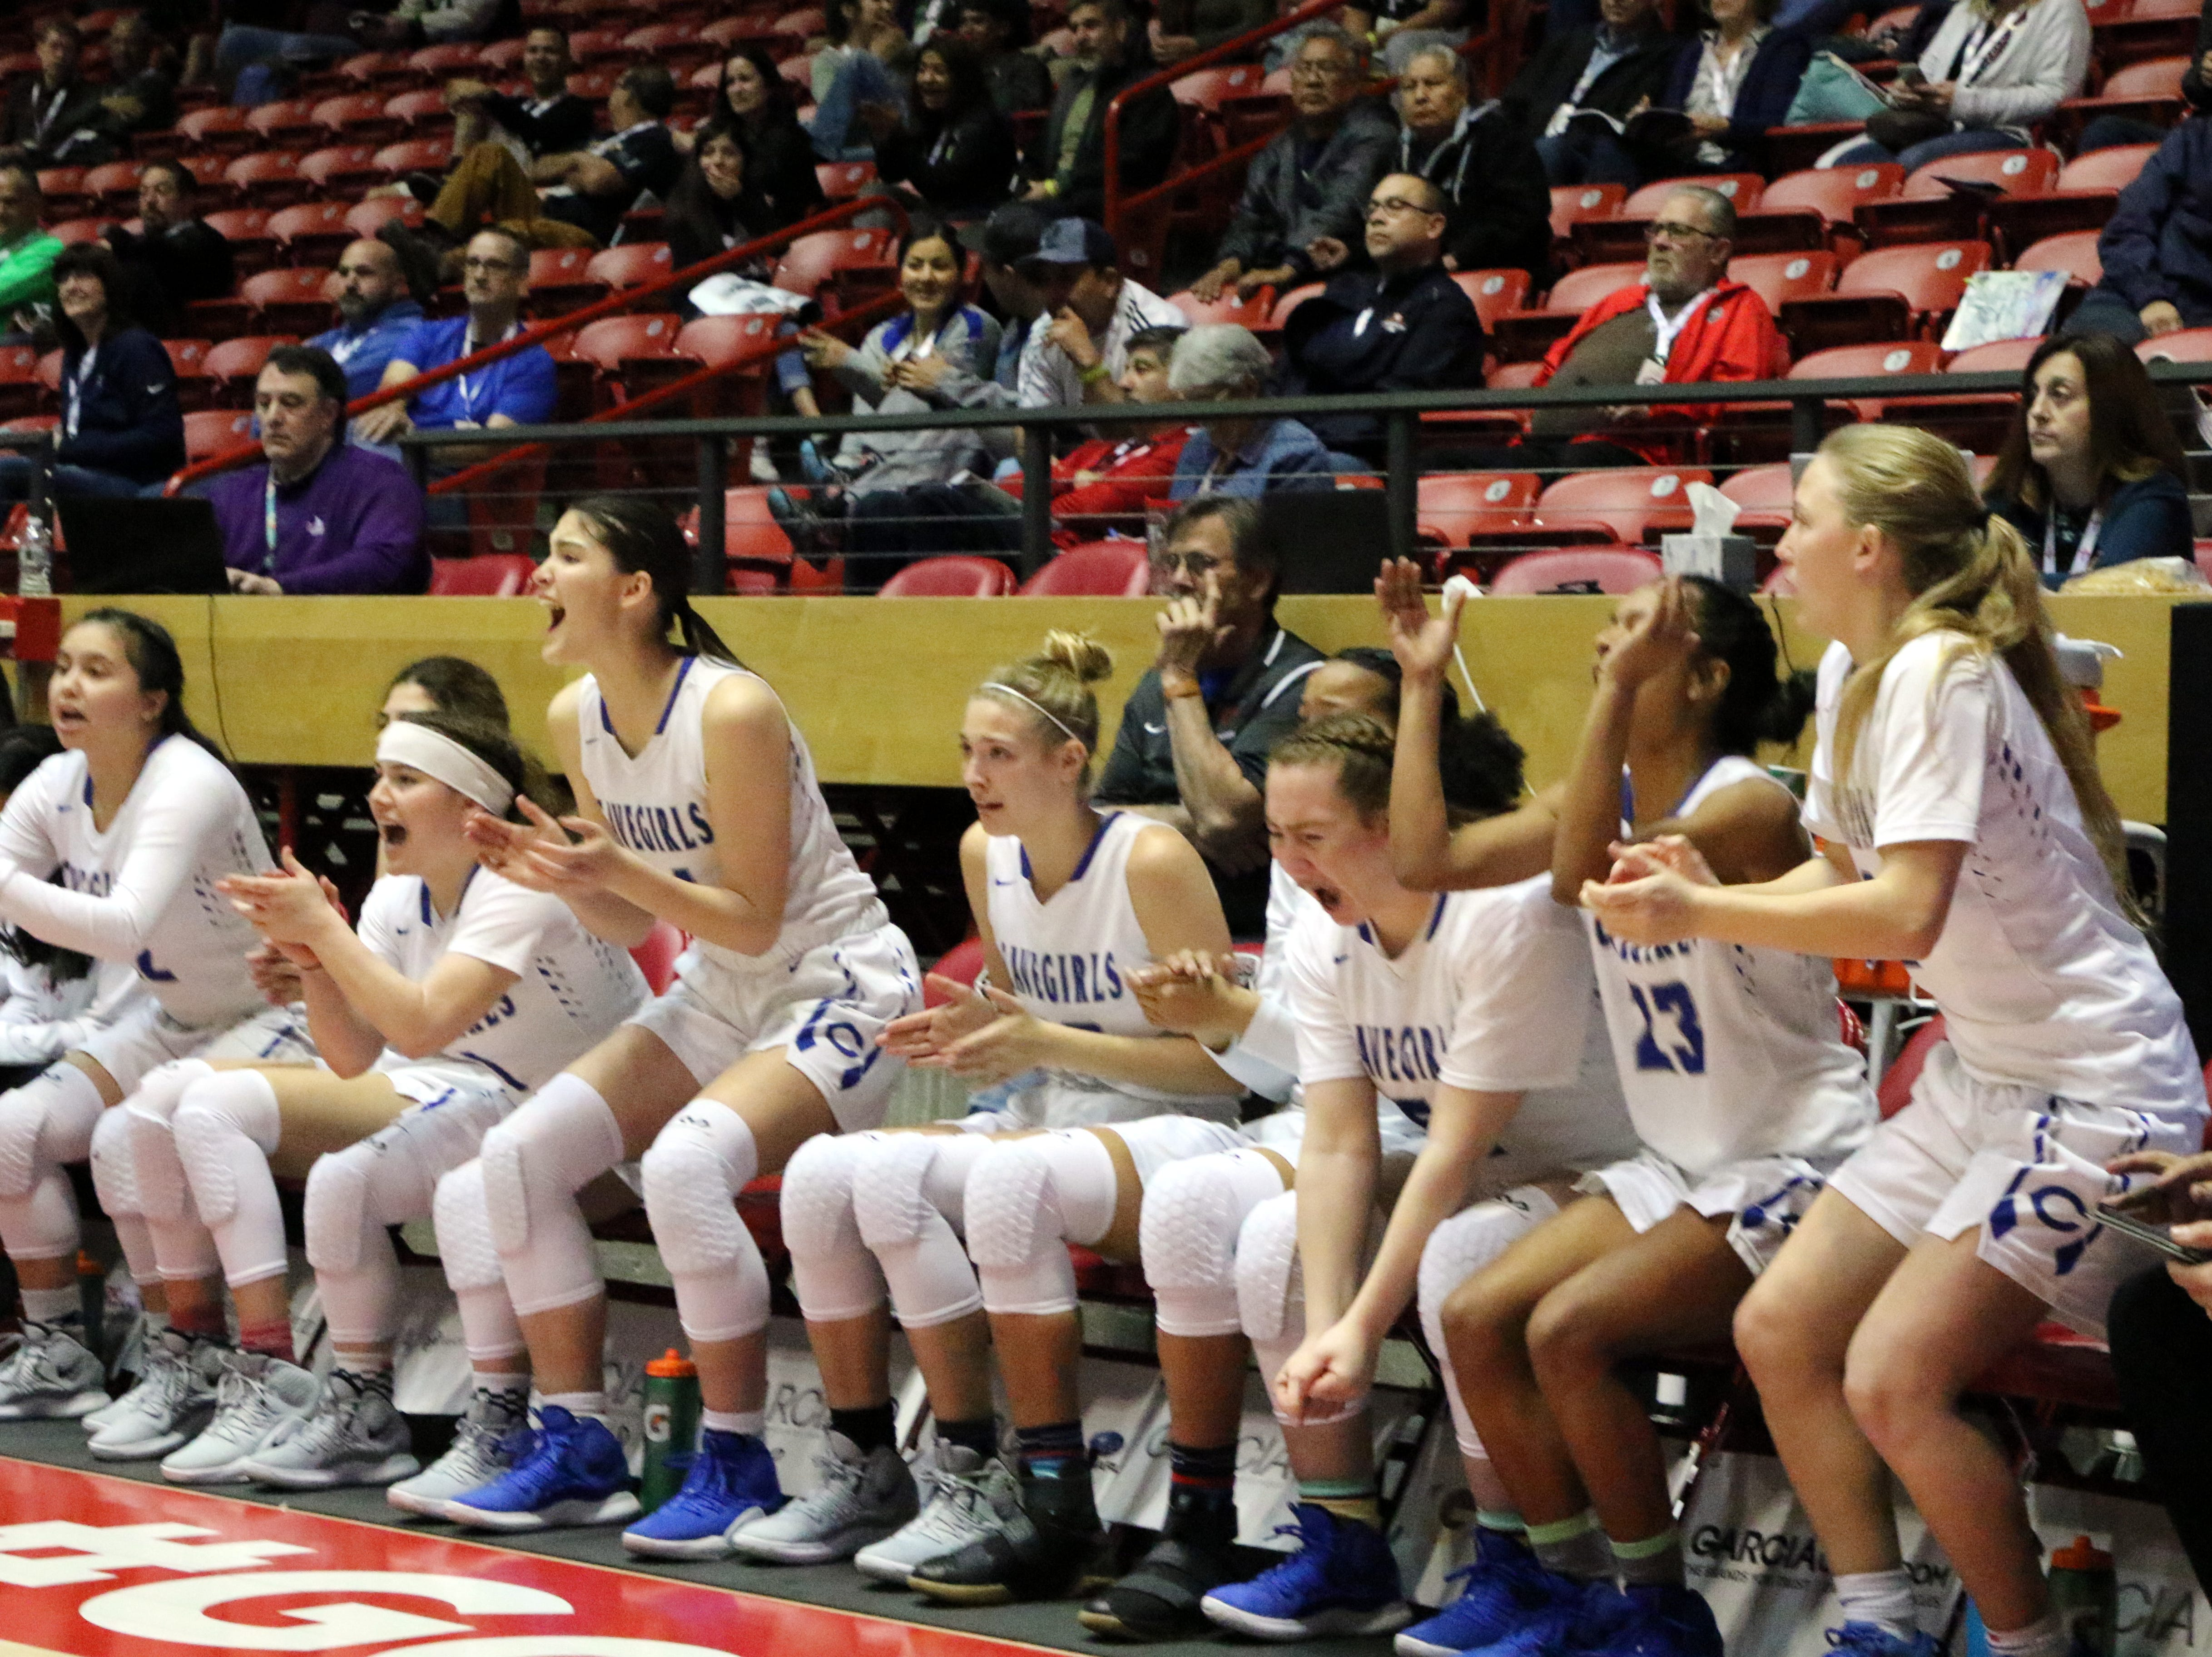 Carlsbad's bench applauds after a Carsyn Boswell drains all three of her free throws in the final minute of regulation against Volcano Vista in Tuesday's Class 5A quarterfinals game at The Pit. Carlsbad won, 41-39 in overtime.